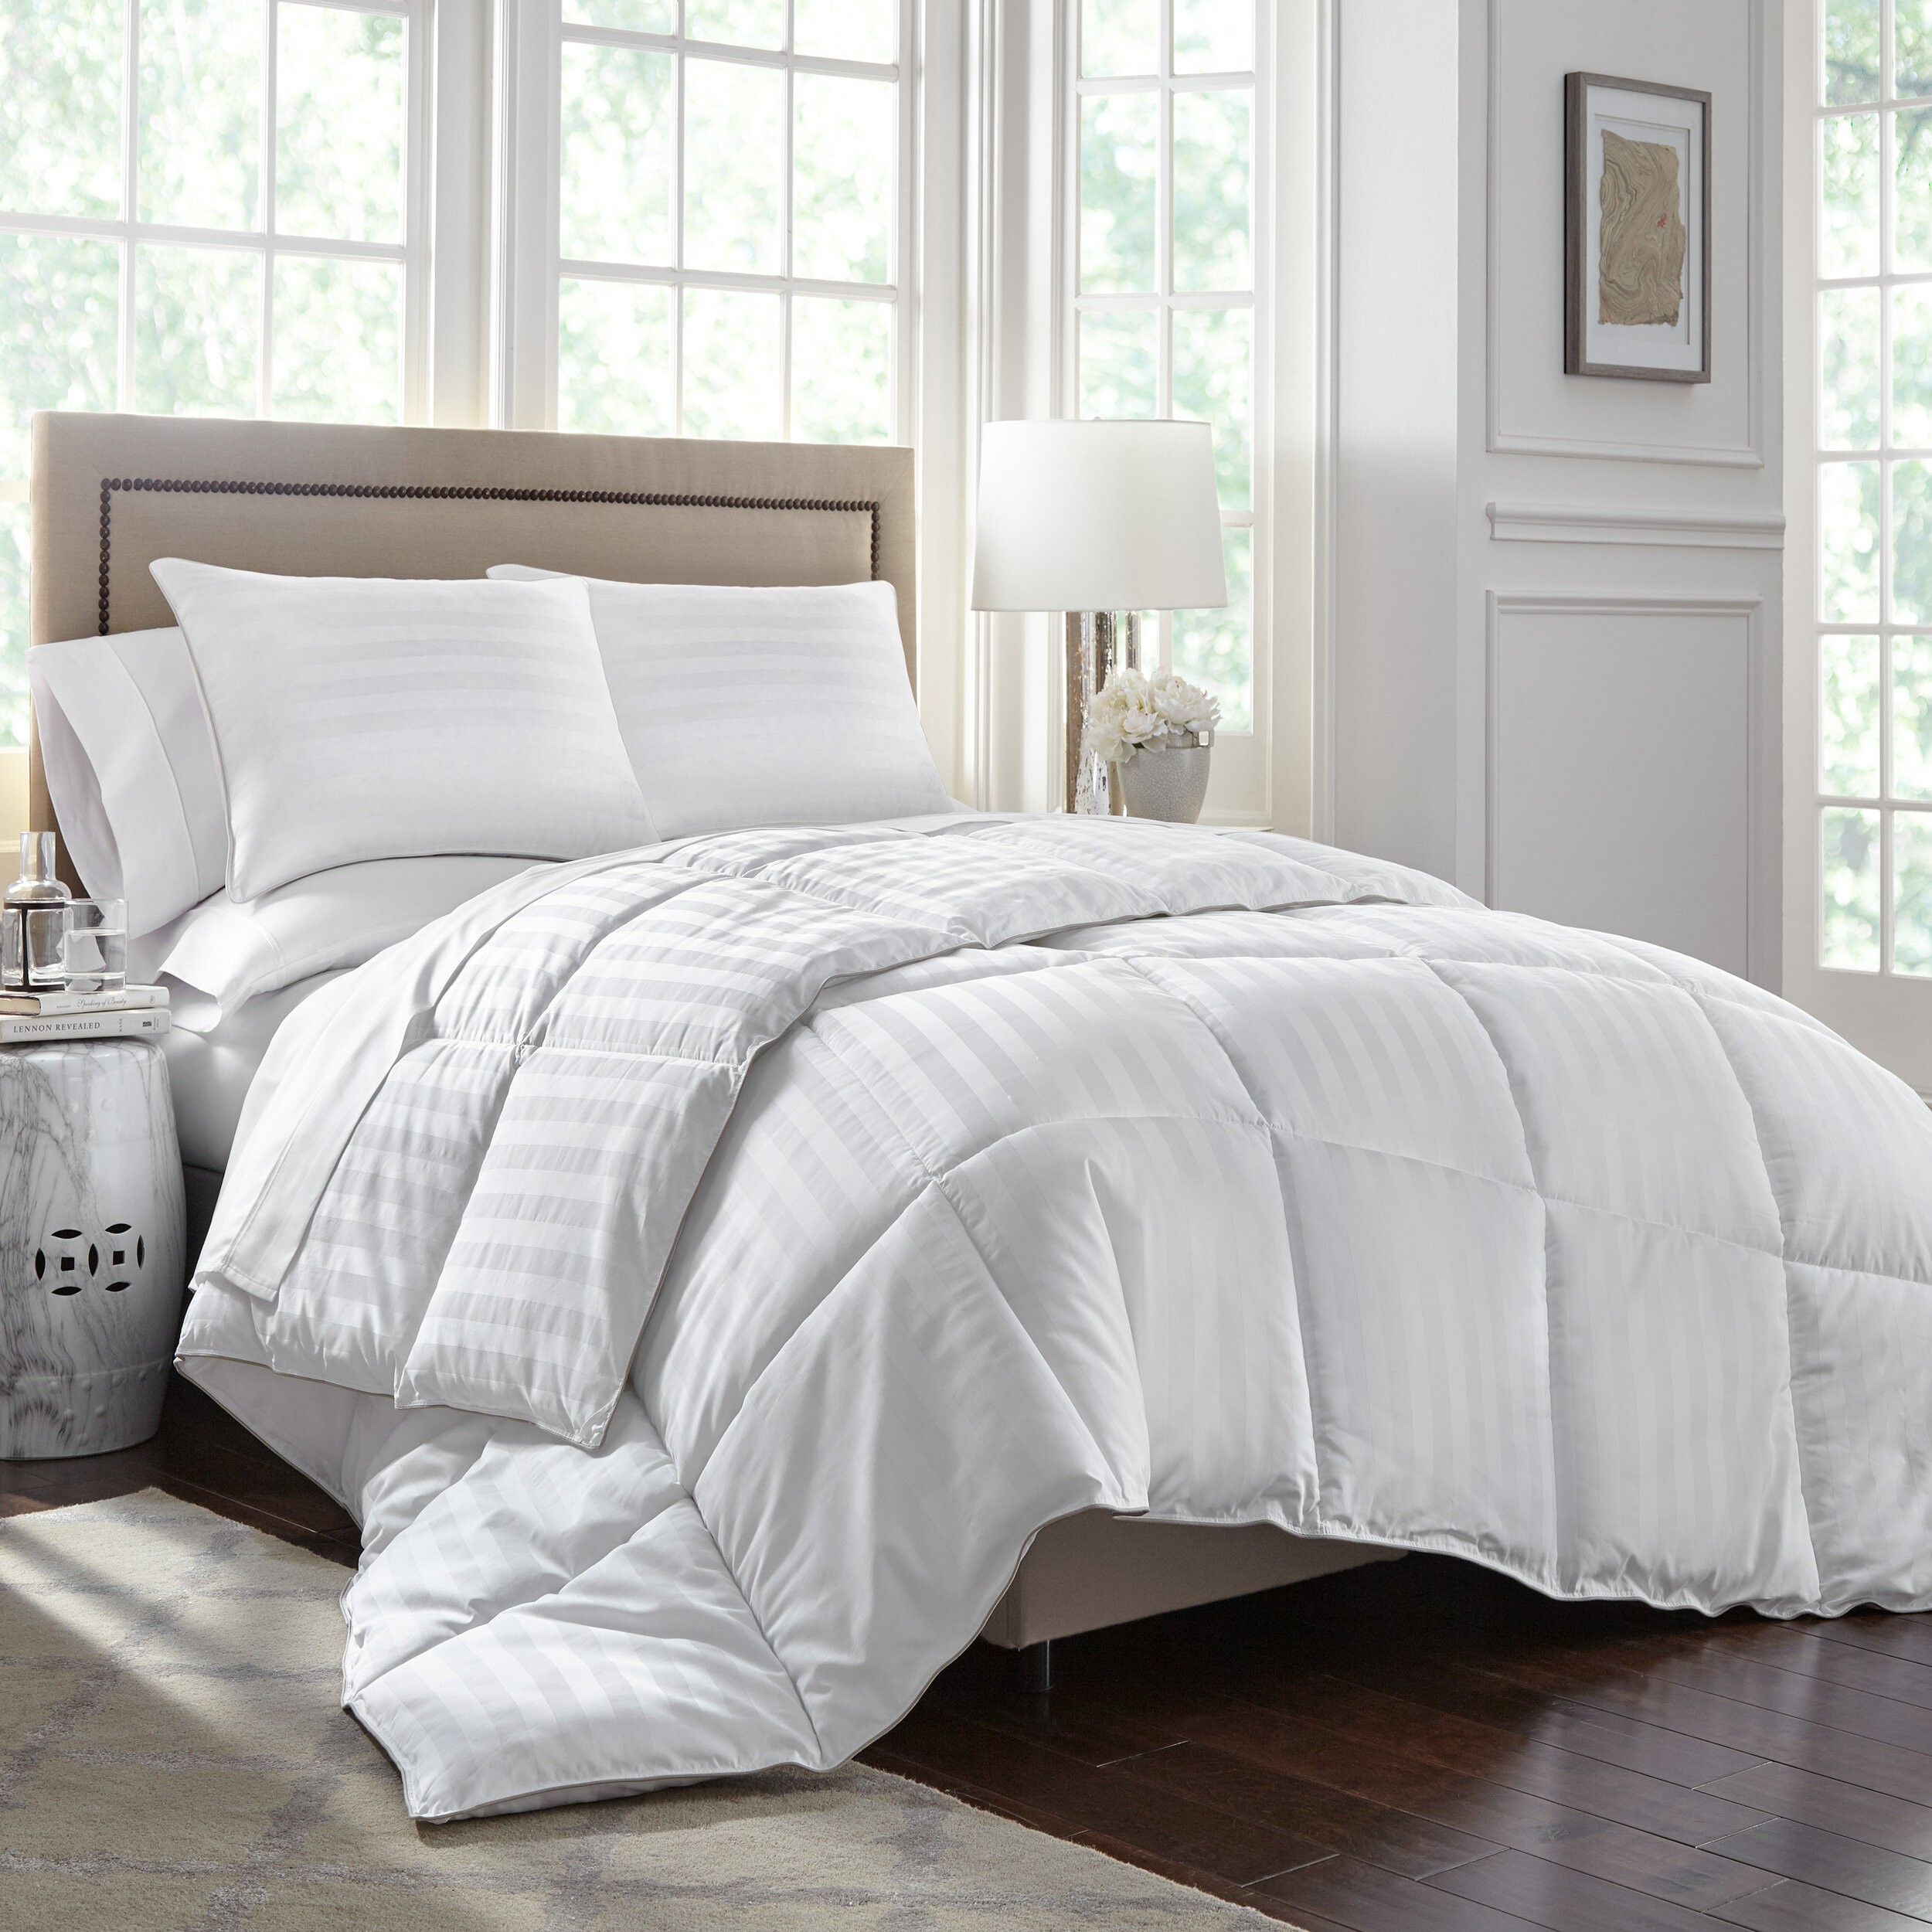 Stearns Foster Primacool All Season Down Alternative Comforter Reviews Wayfair